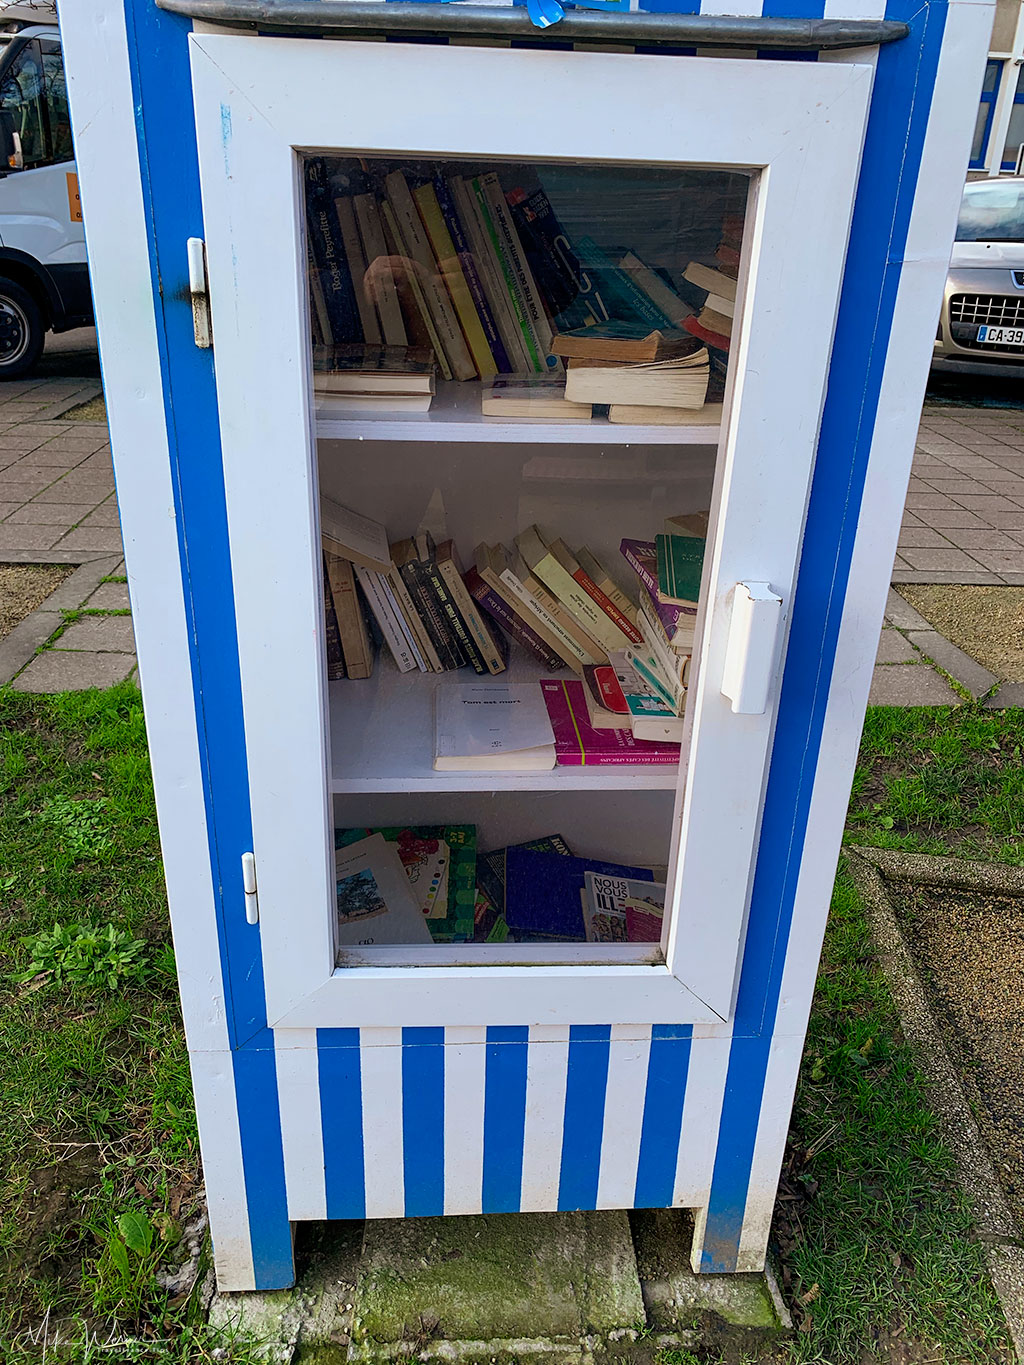 Books can be taken out for free (and hopefully new ones are put back) in Dinard